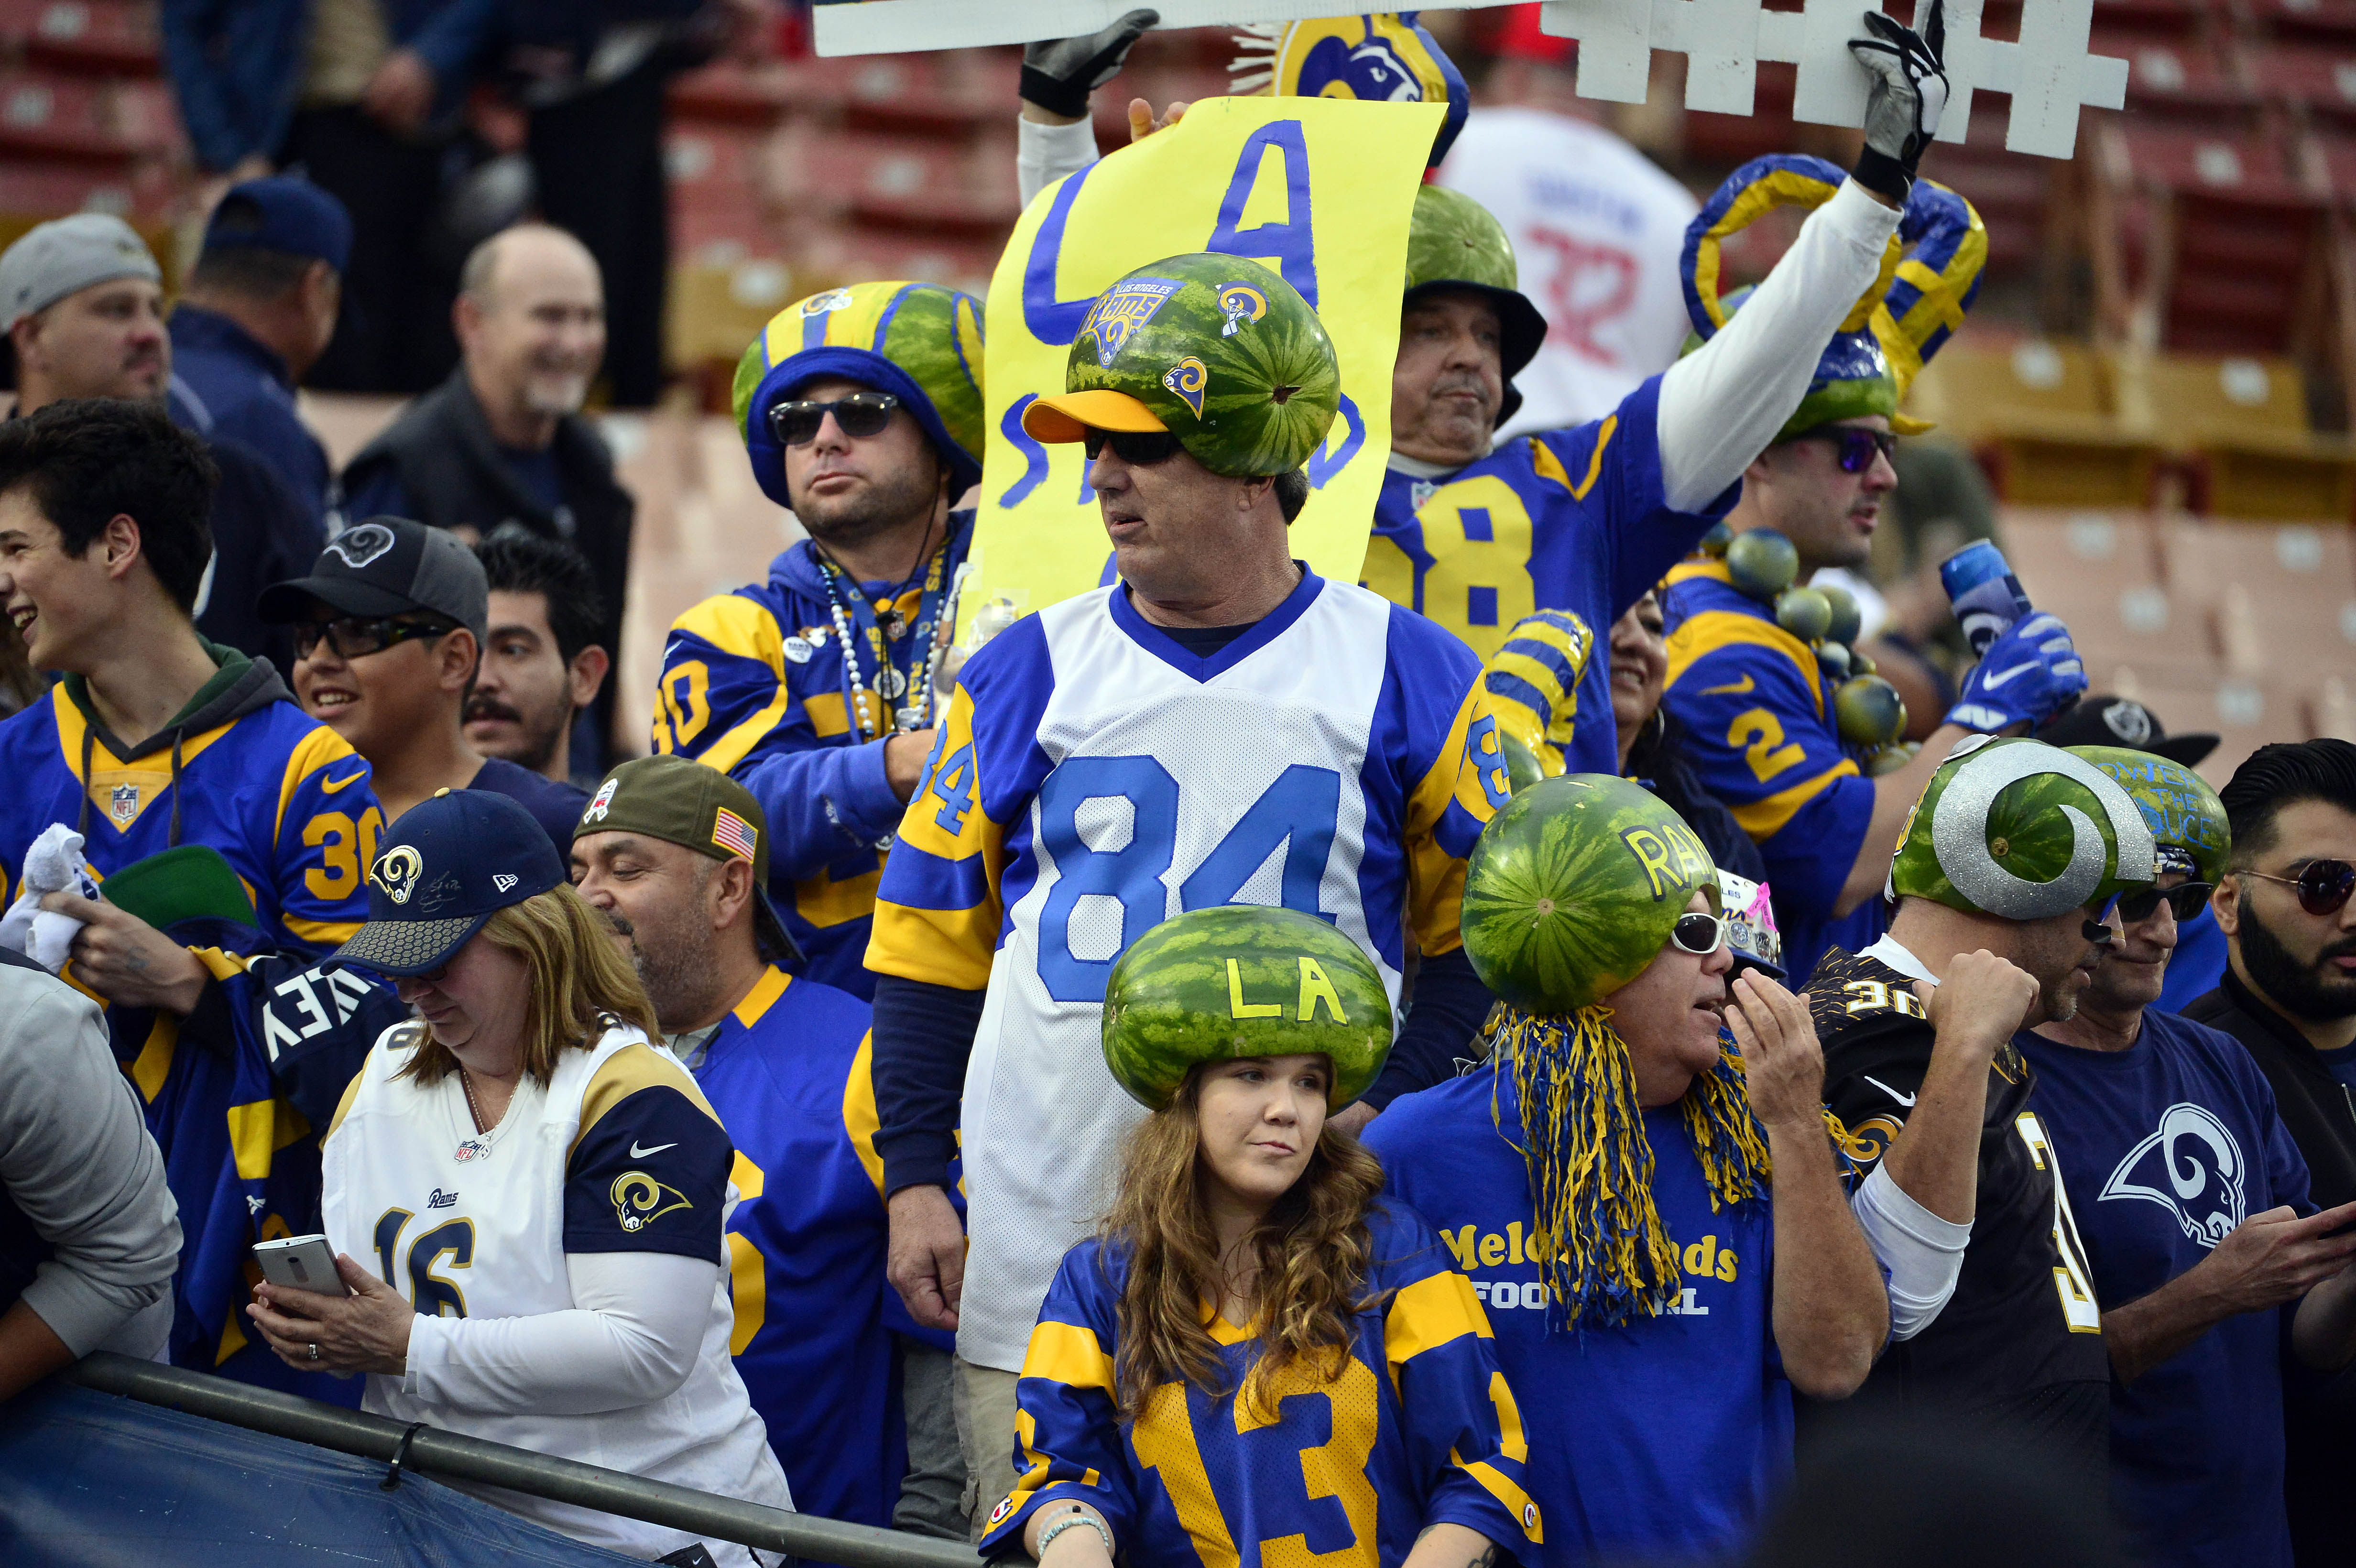 Los Angeles Rams fans before the NFC Wild Card playoff football game against the Atlanta Falcons at the Los Angeles Memorial Coliseum, January 6, 2018.